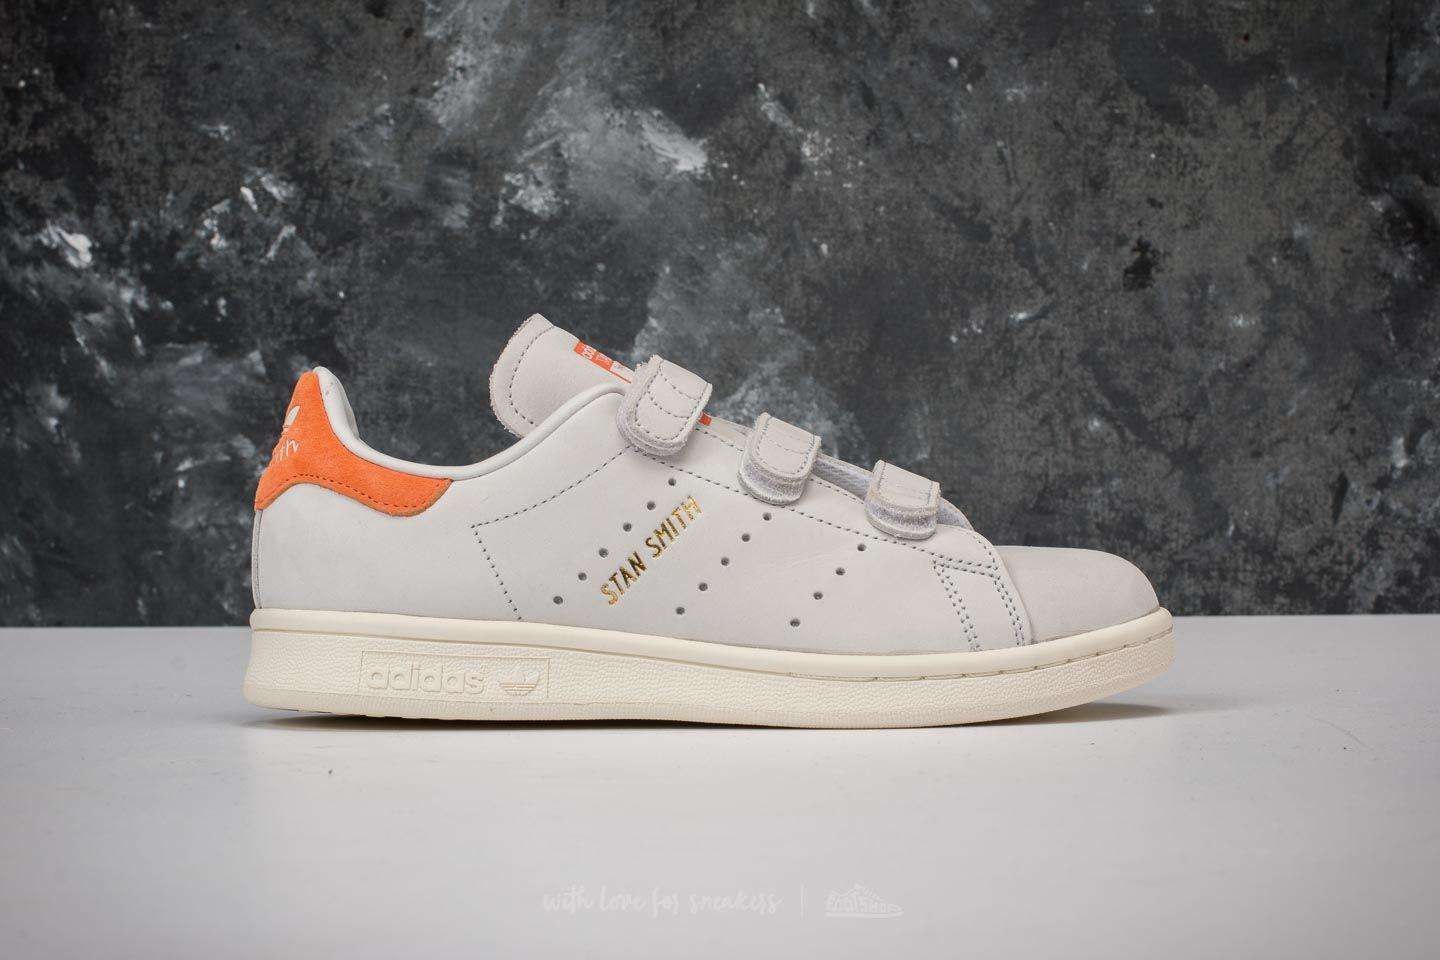 official recognized brands entire collection Adidas Stan Smith Cf W Crystal White/ Crystal White/ Trace Orange